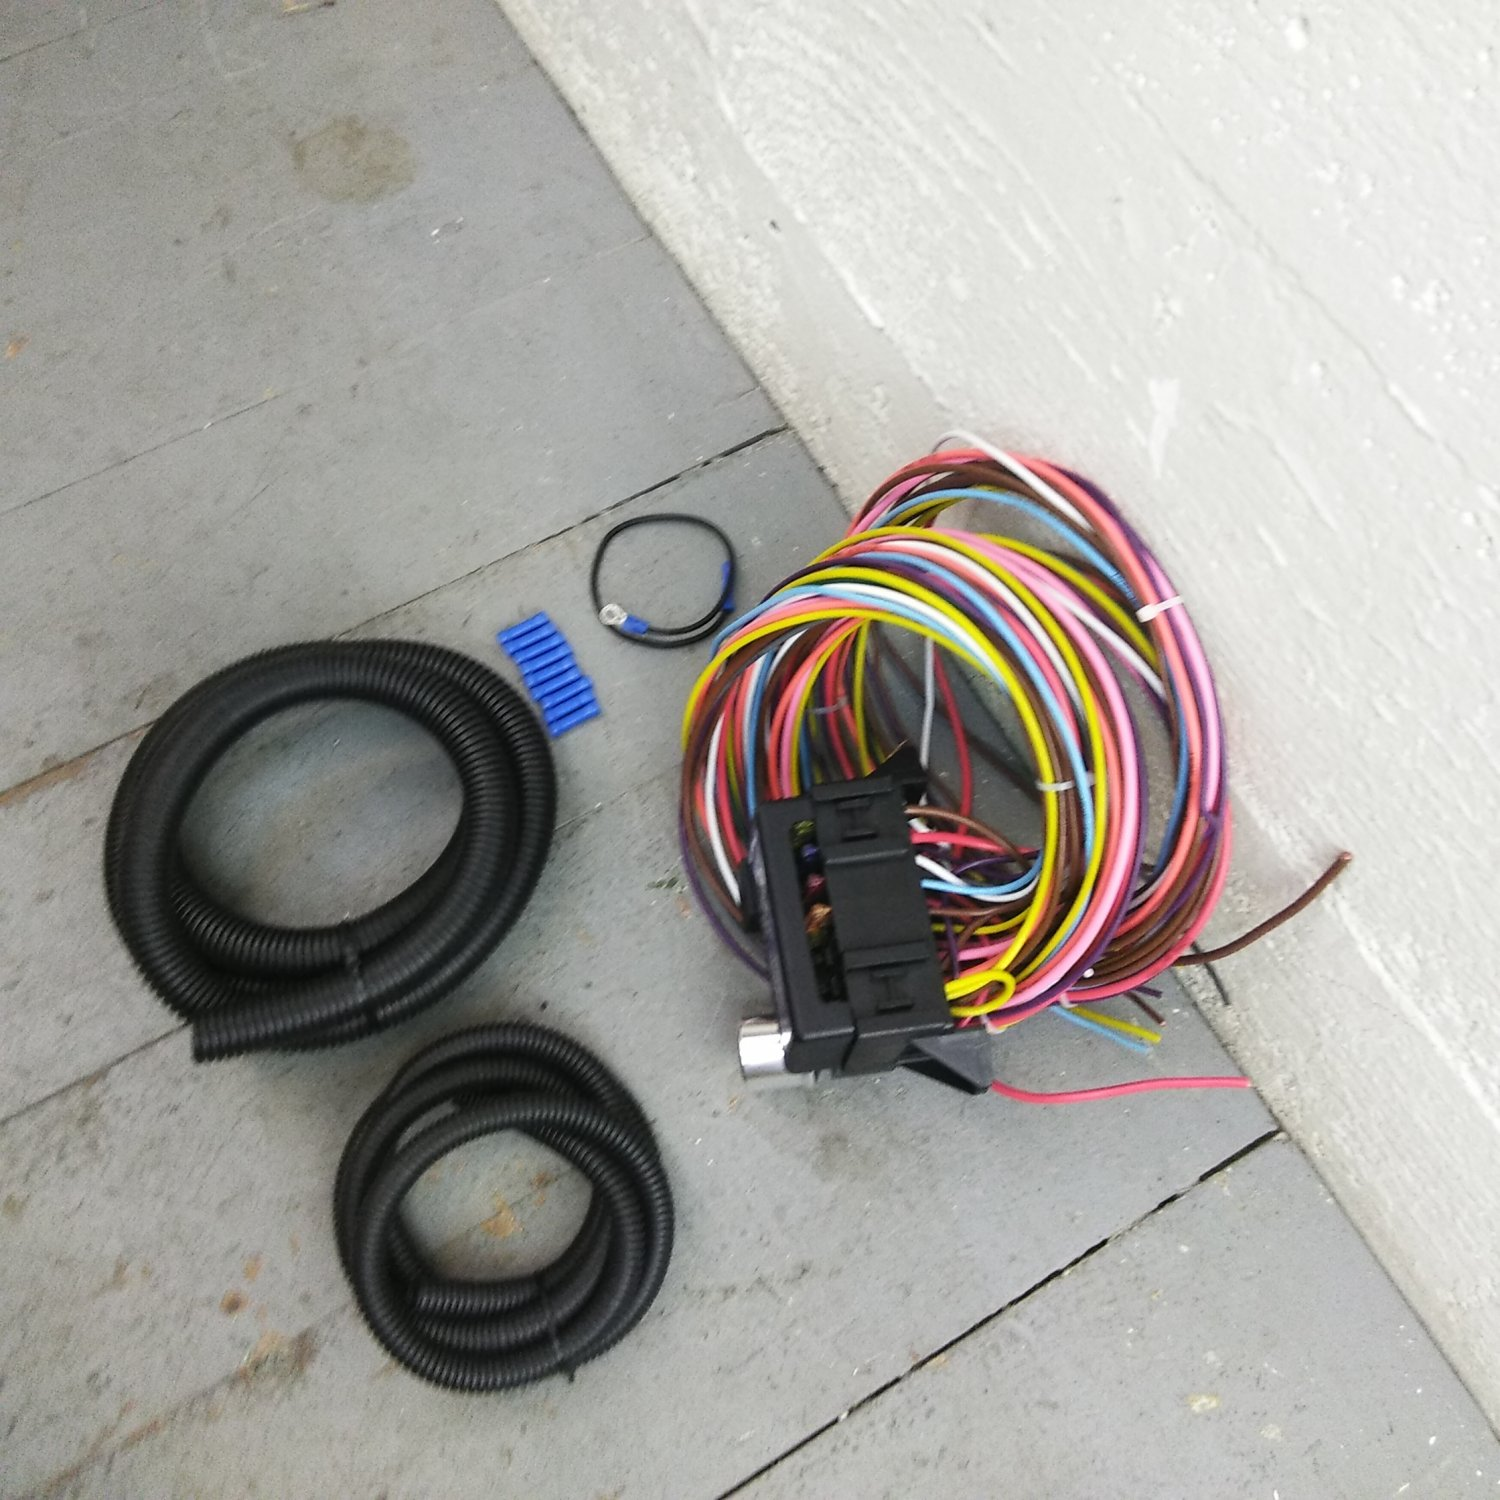 1934 - 1936 Chevy Truck 8 Circuit Wire Harness fits painless complete  update. Bar_Product_Description_C